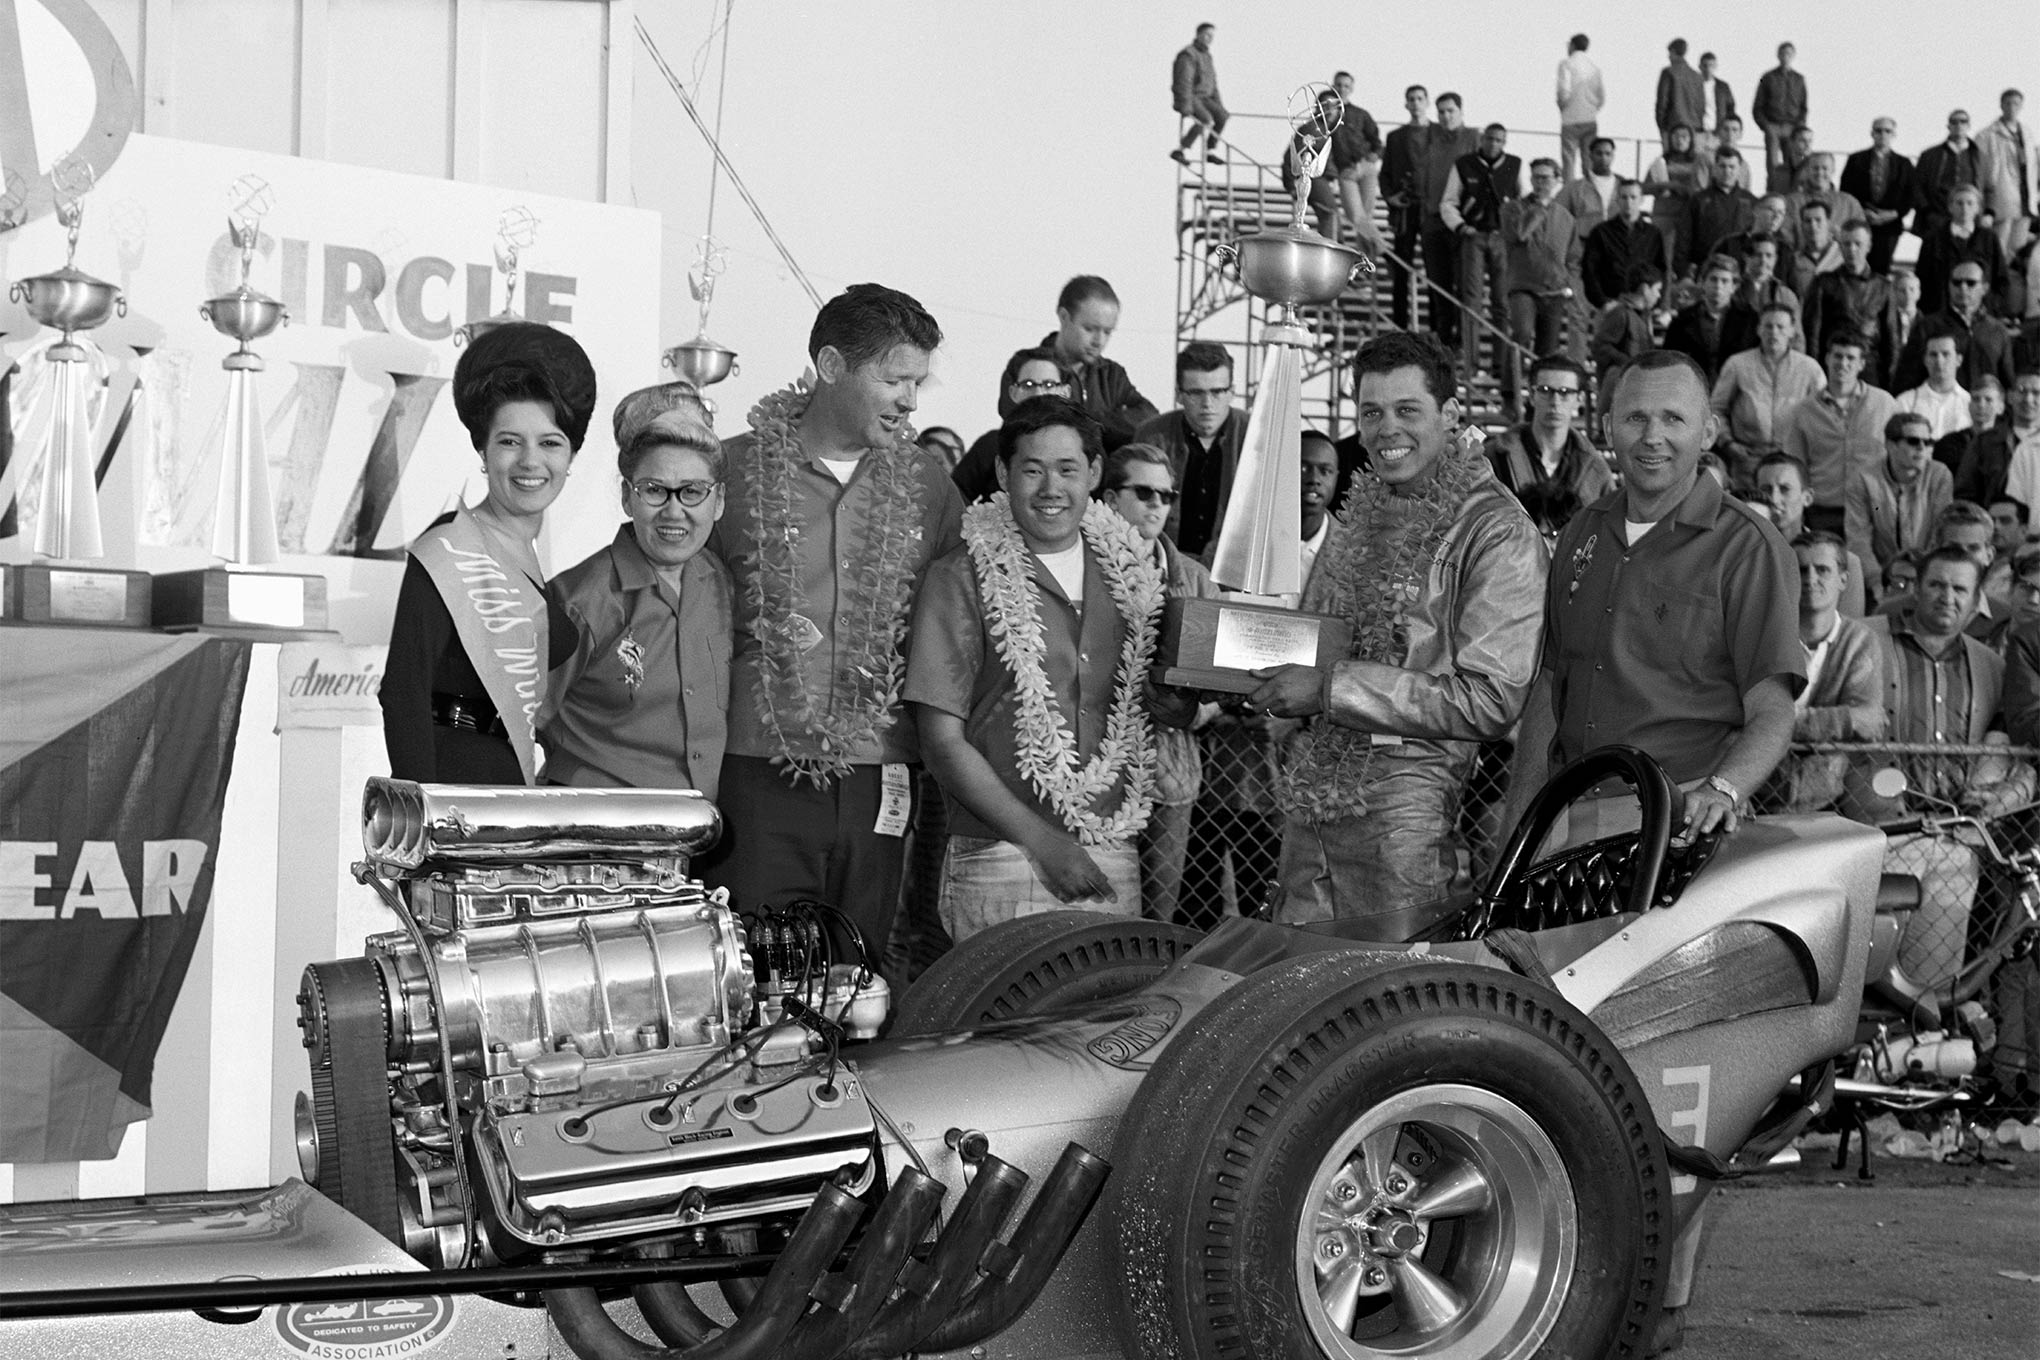 The 1965 NHRA Winternationals winners from left Miss Winternationals, Roland's mother Teddy, engine builder Keith Black, Leong, Prudhomme, and crewmember Wes Hanson.